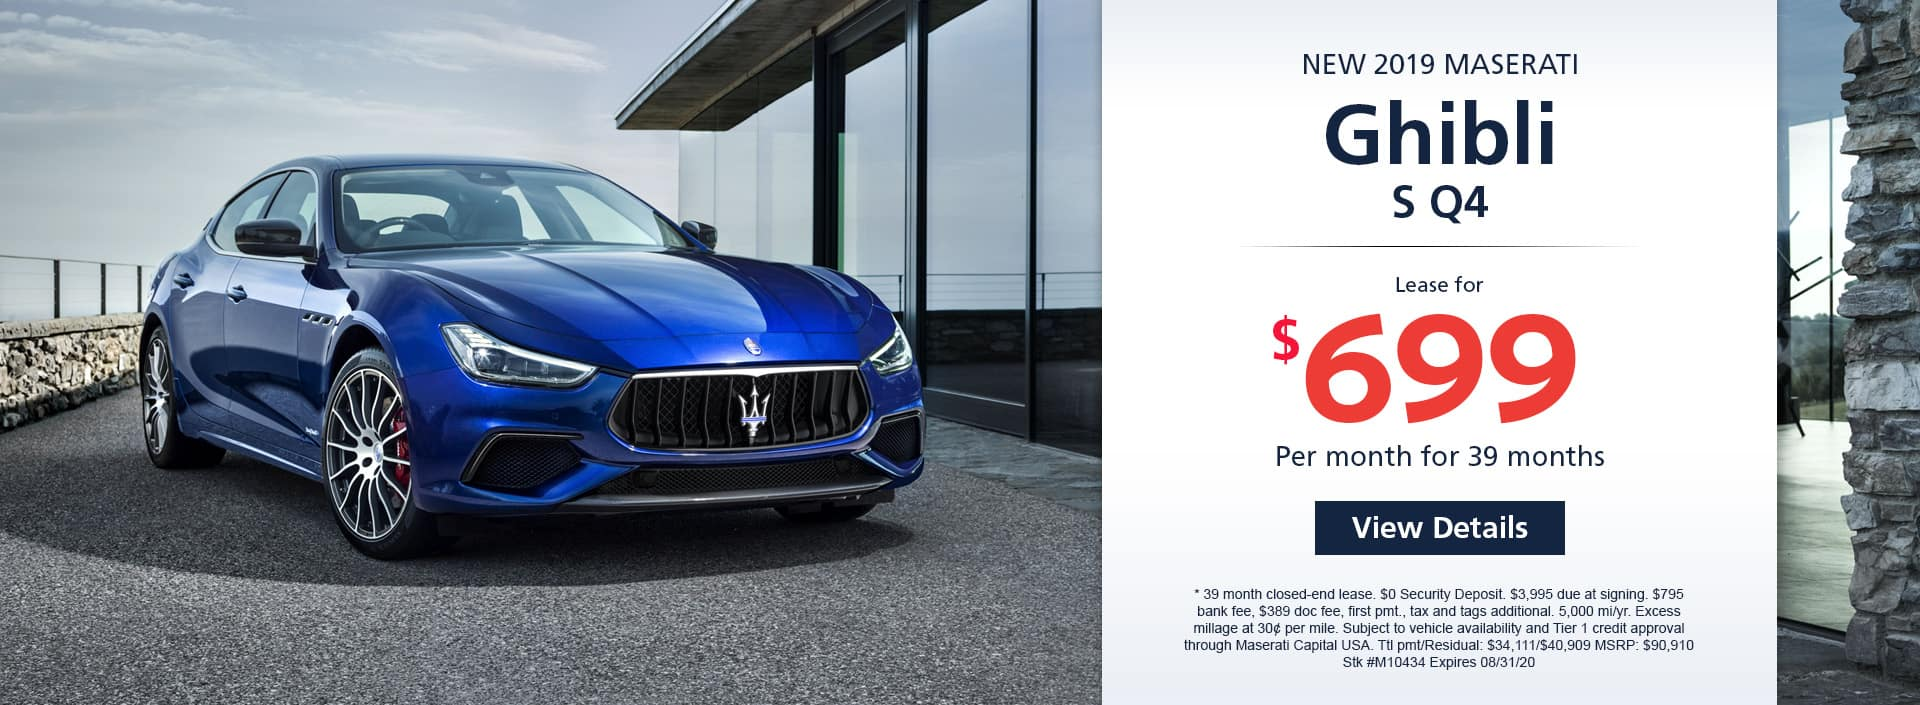 Lease a new 2019 Maserati Ghibli S Q4 for $699 a month for 39 months. Or get special 0% APR financing for up to 60 months or 0% APR financing up to 84 months